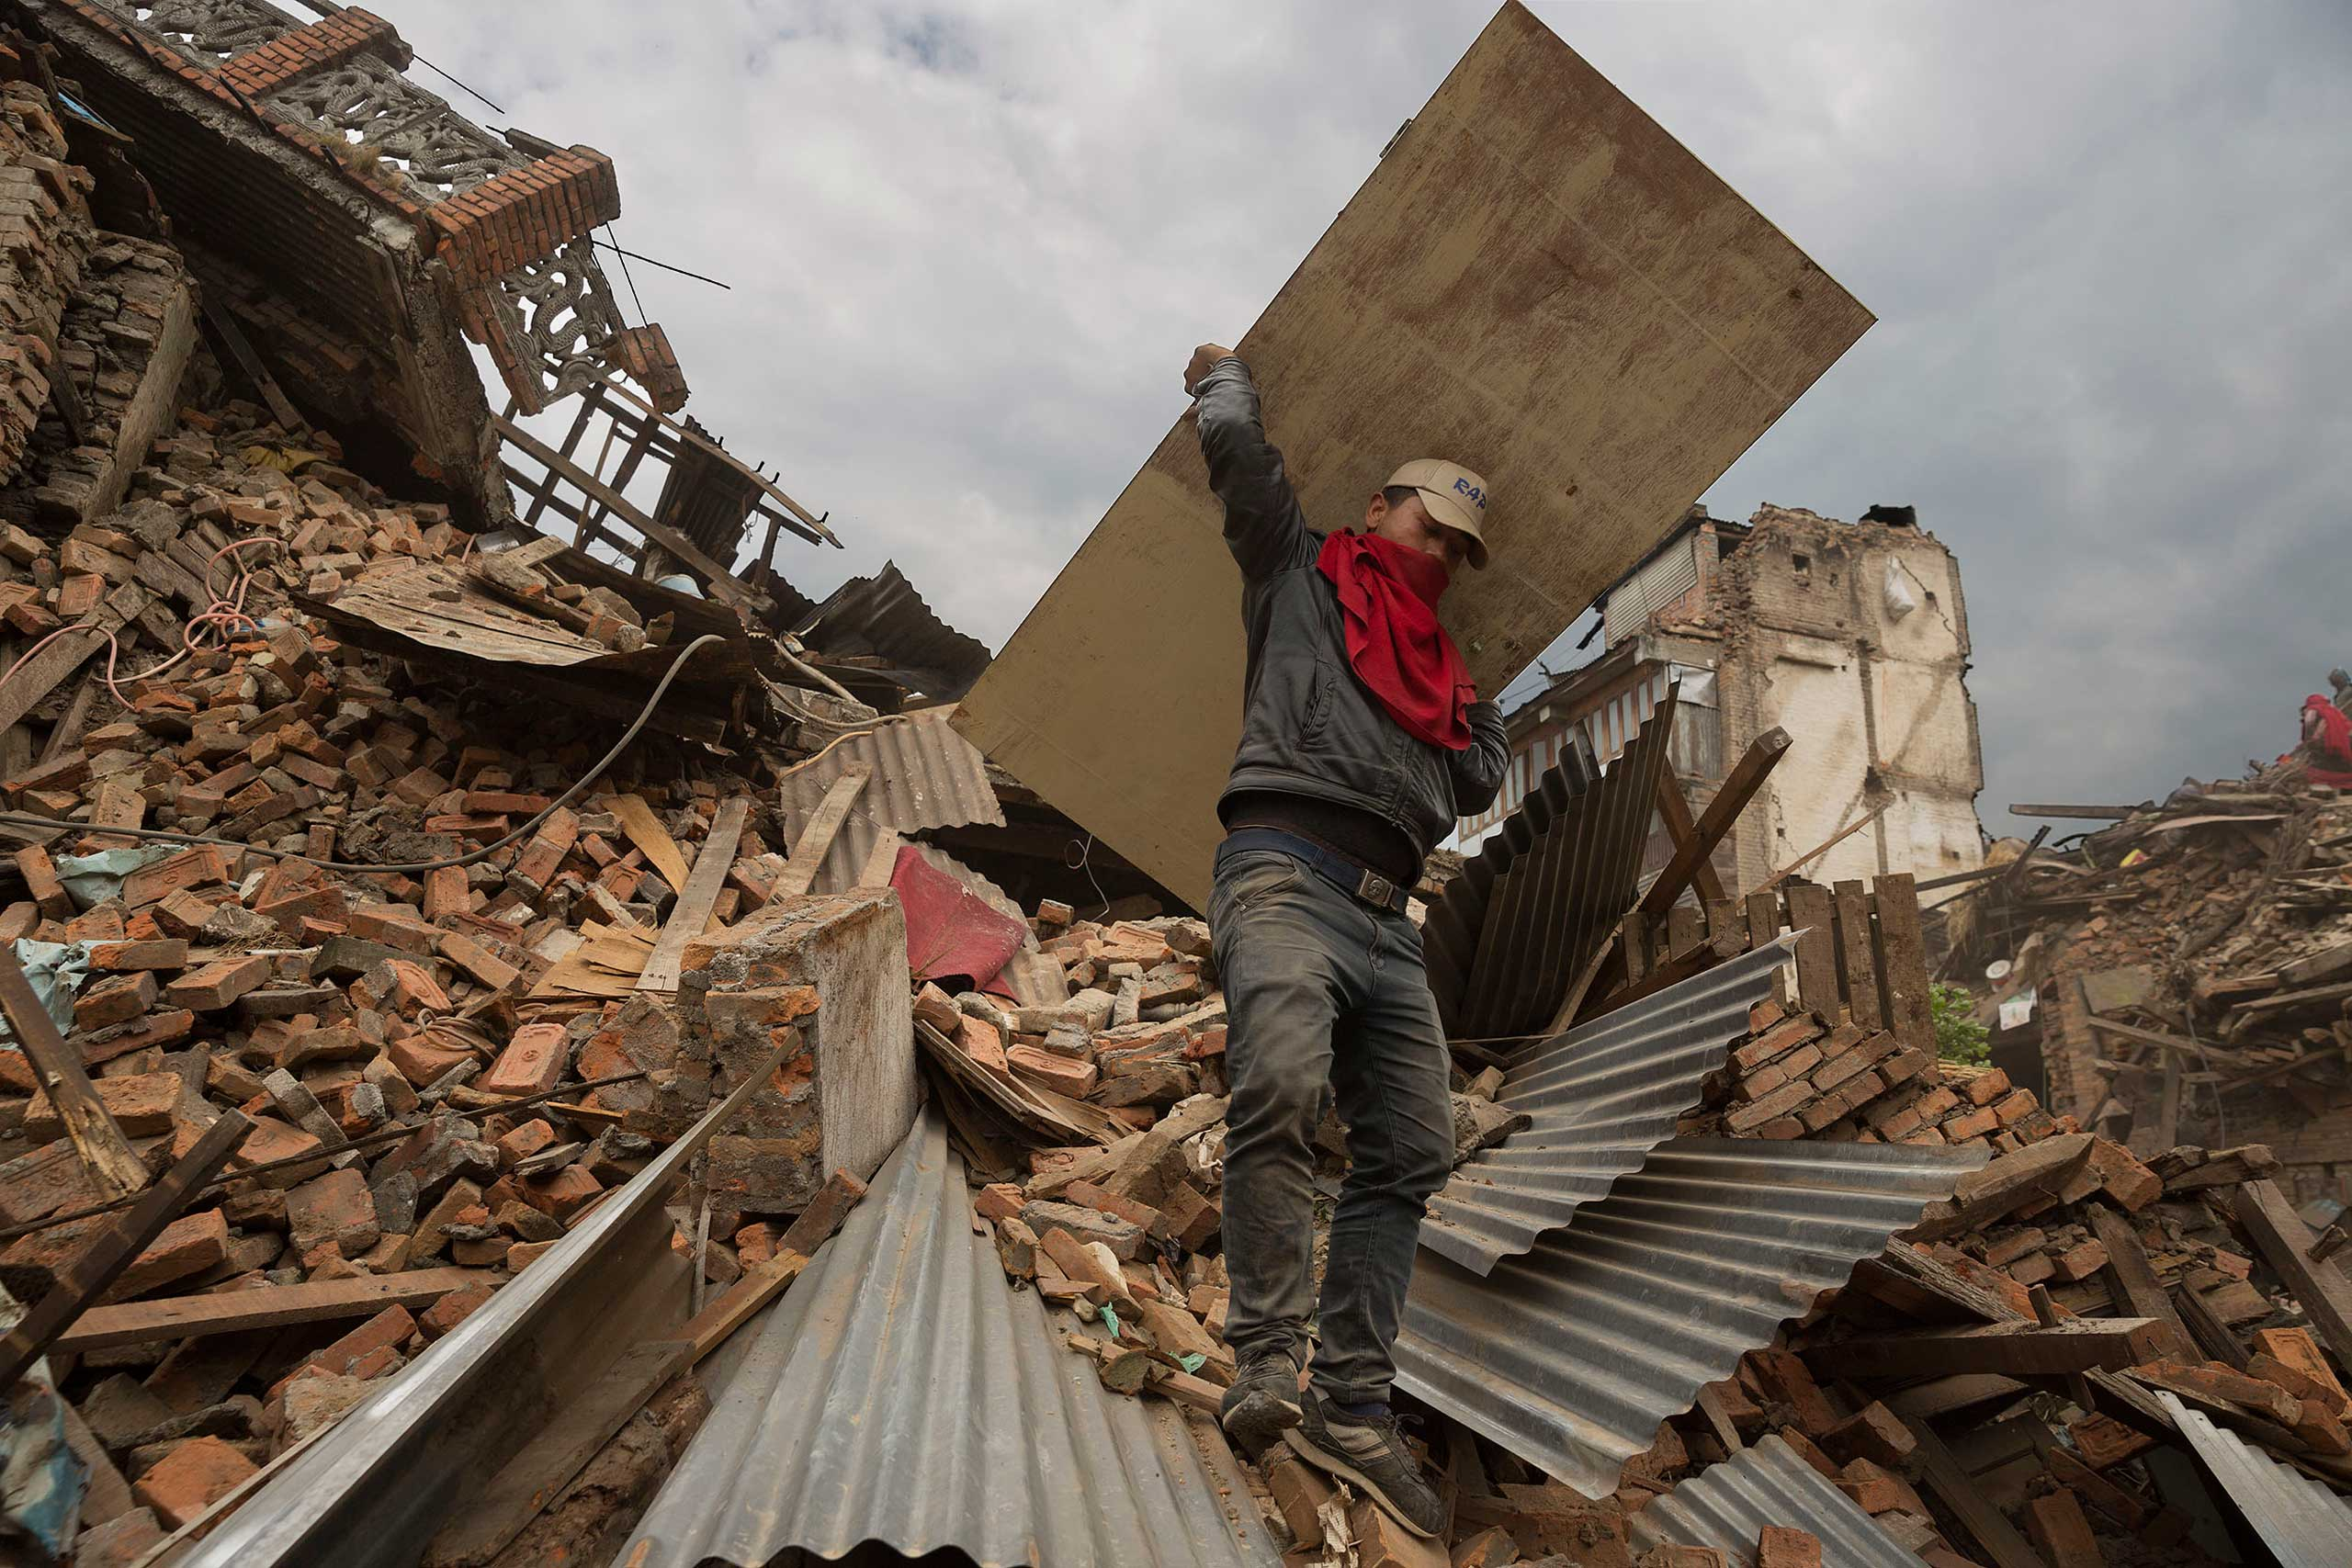 A man sorts through the wreckage of destroyed homes in the ancient city of Bhaktapur, near Kathmandu, April 28, 2015.